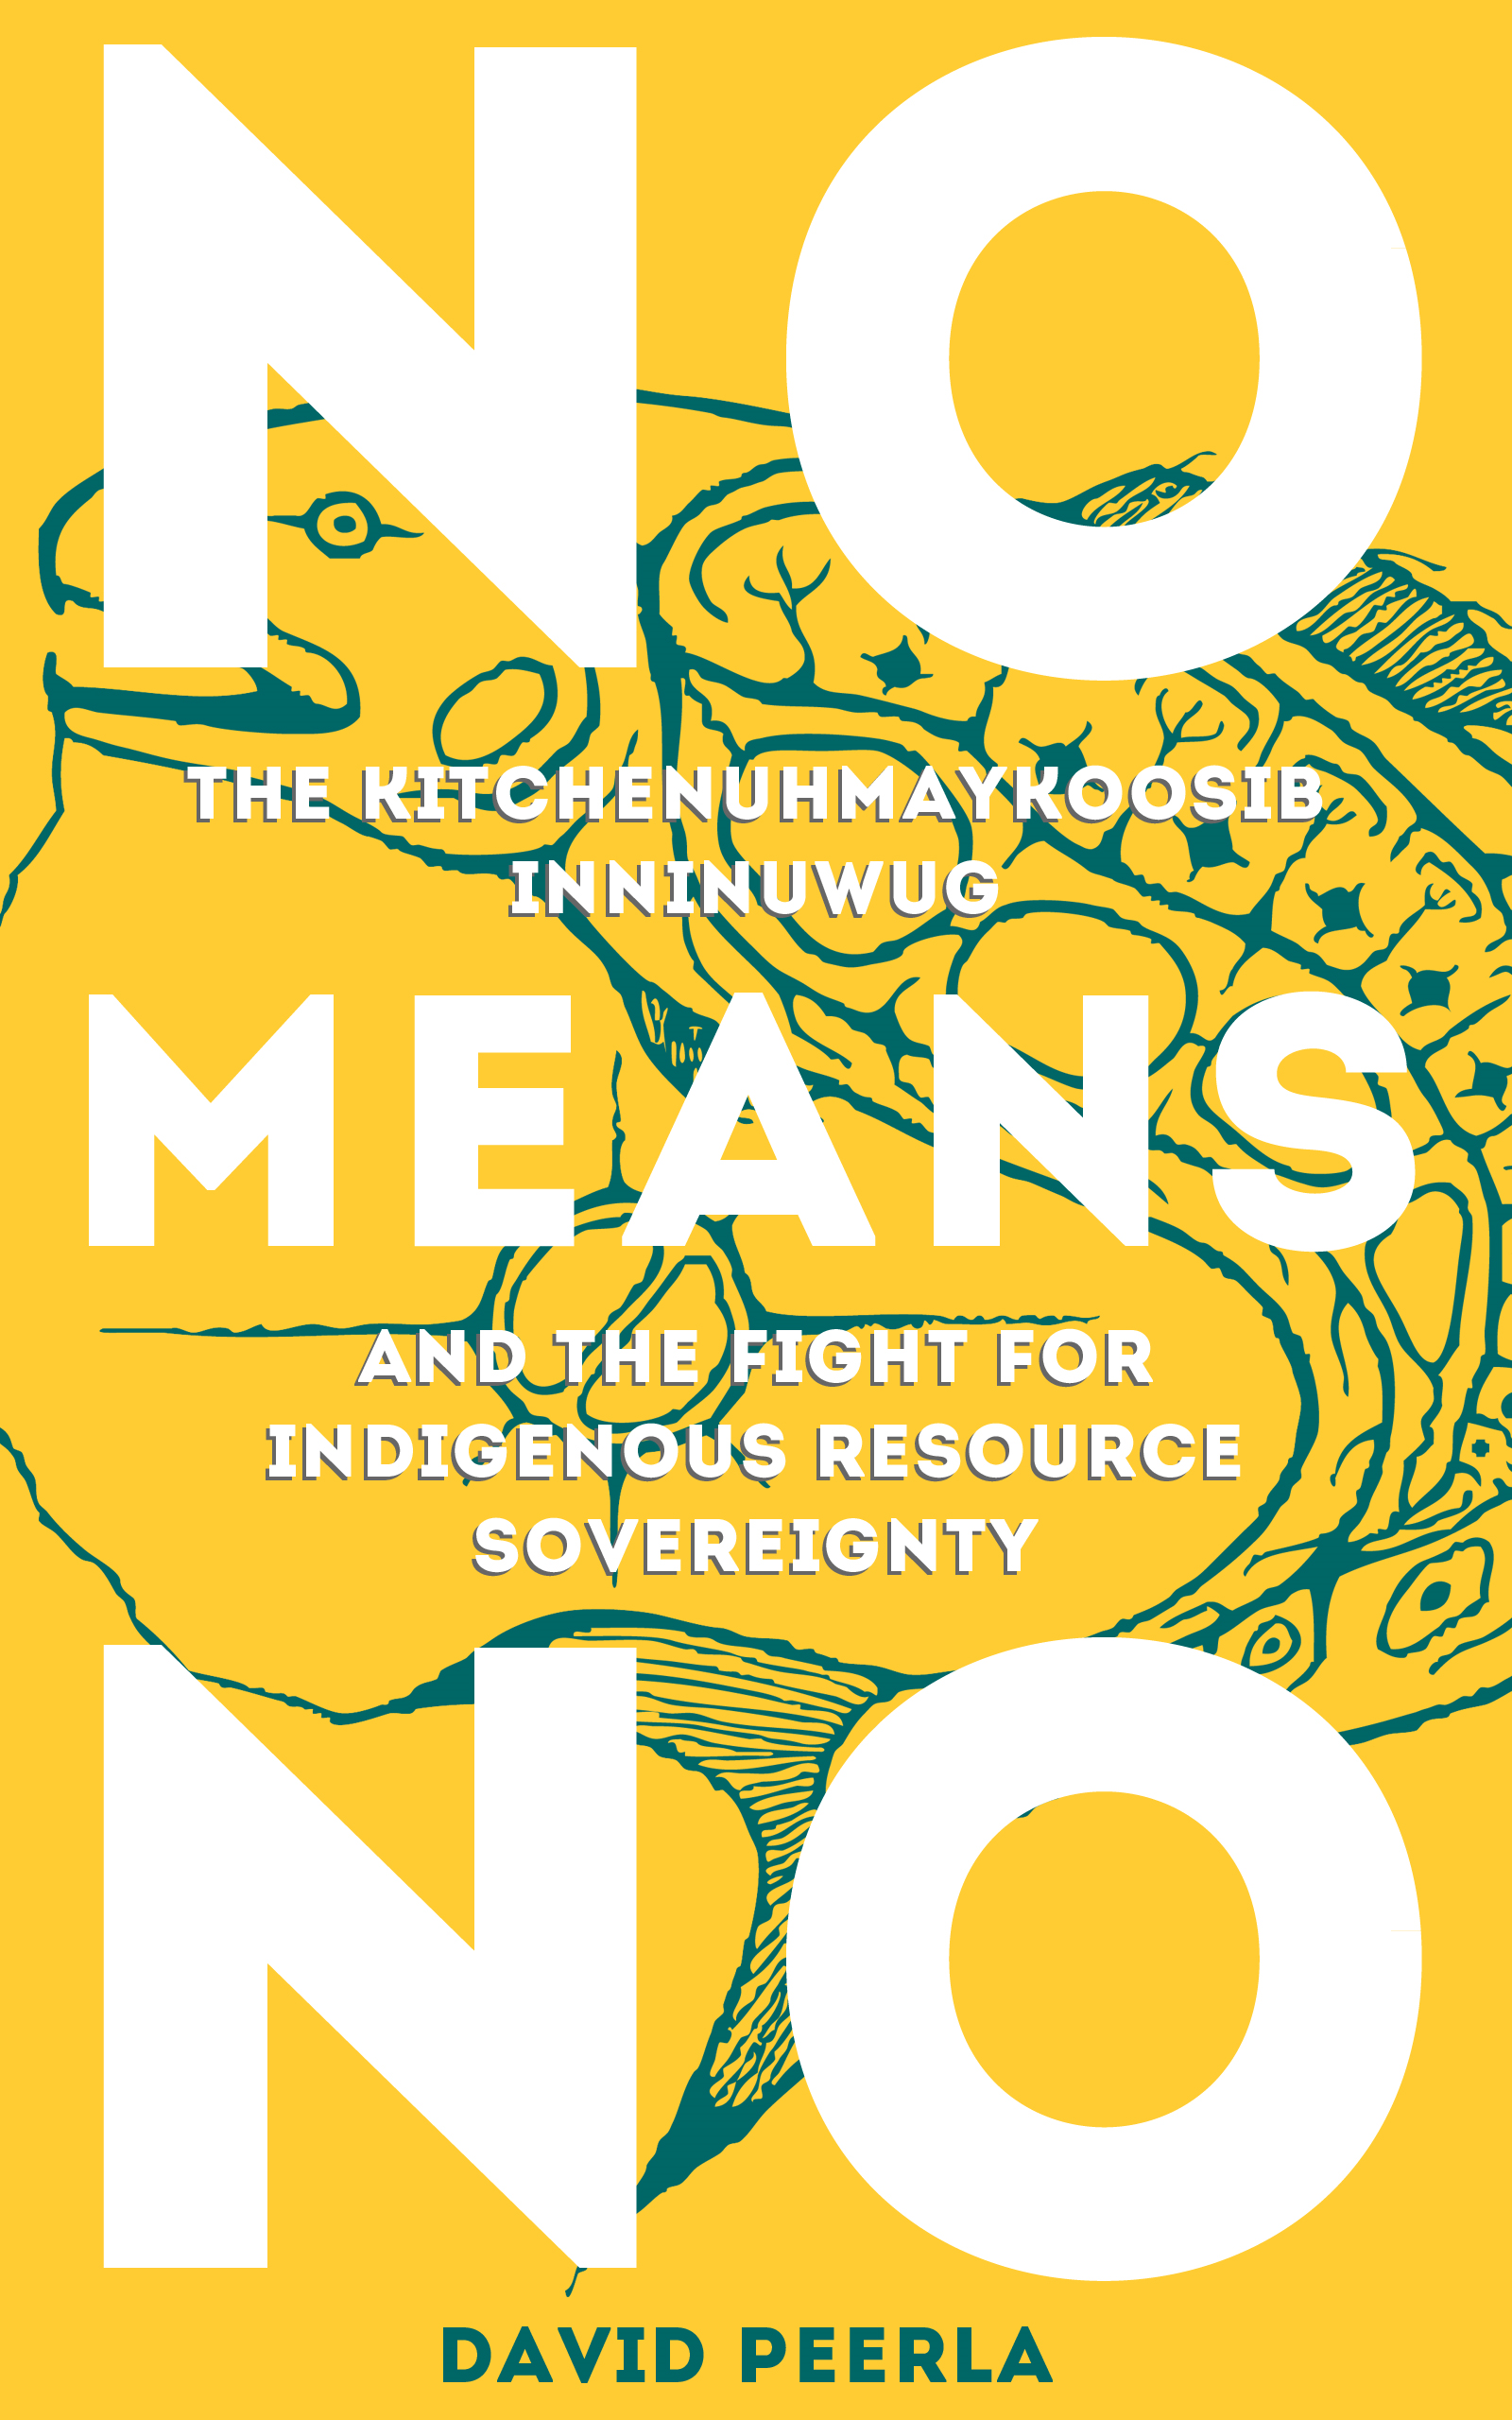 NO MEANS NO, THE KITCHENUHMAYKOOSIB INNINUWUG AND THE FIGHT FOR RESOURCE SOVEREIGNTY By: DAVID PEERLA